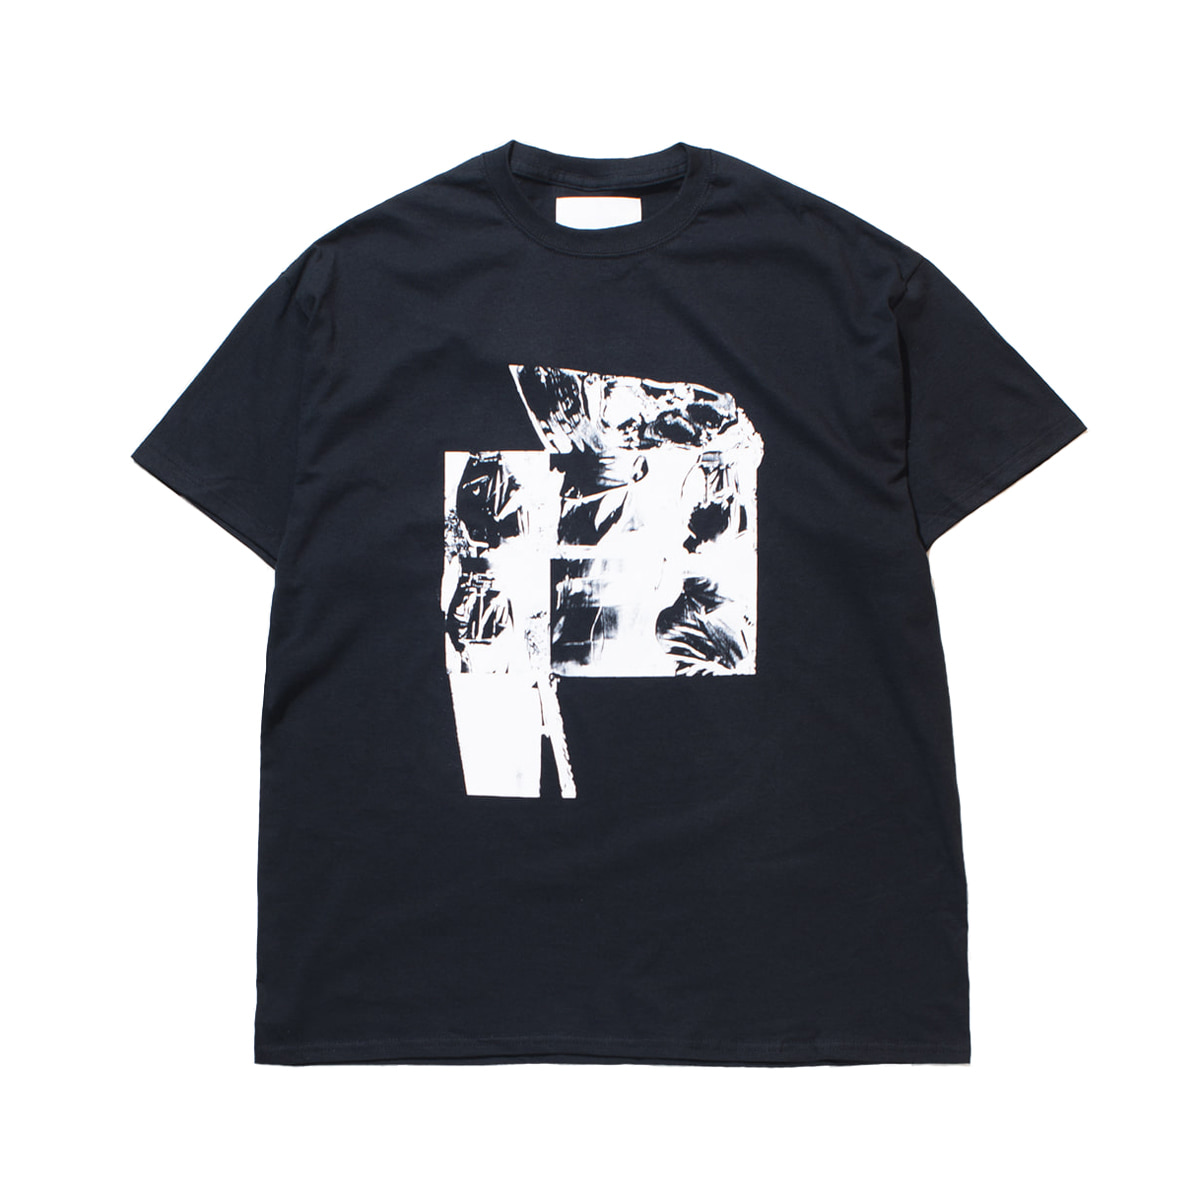 [GAKURO] 'UNTITLED #1' T-SHIRT 'BLACK'